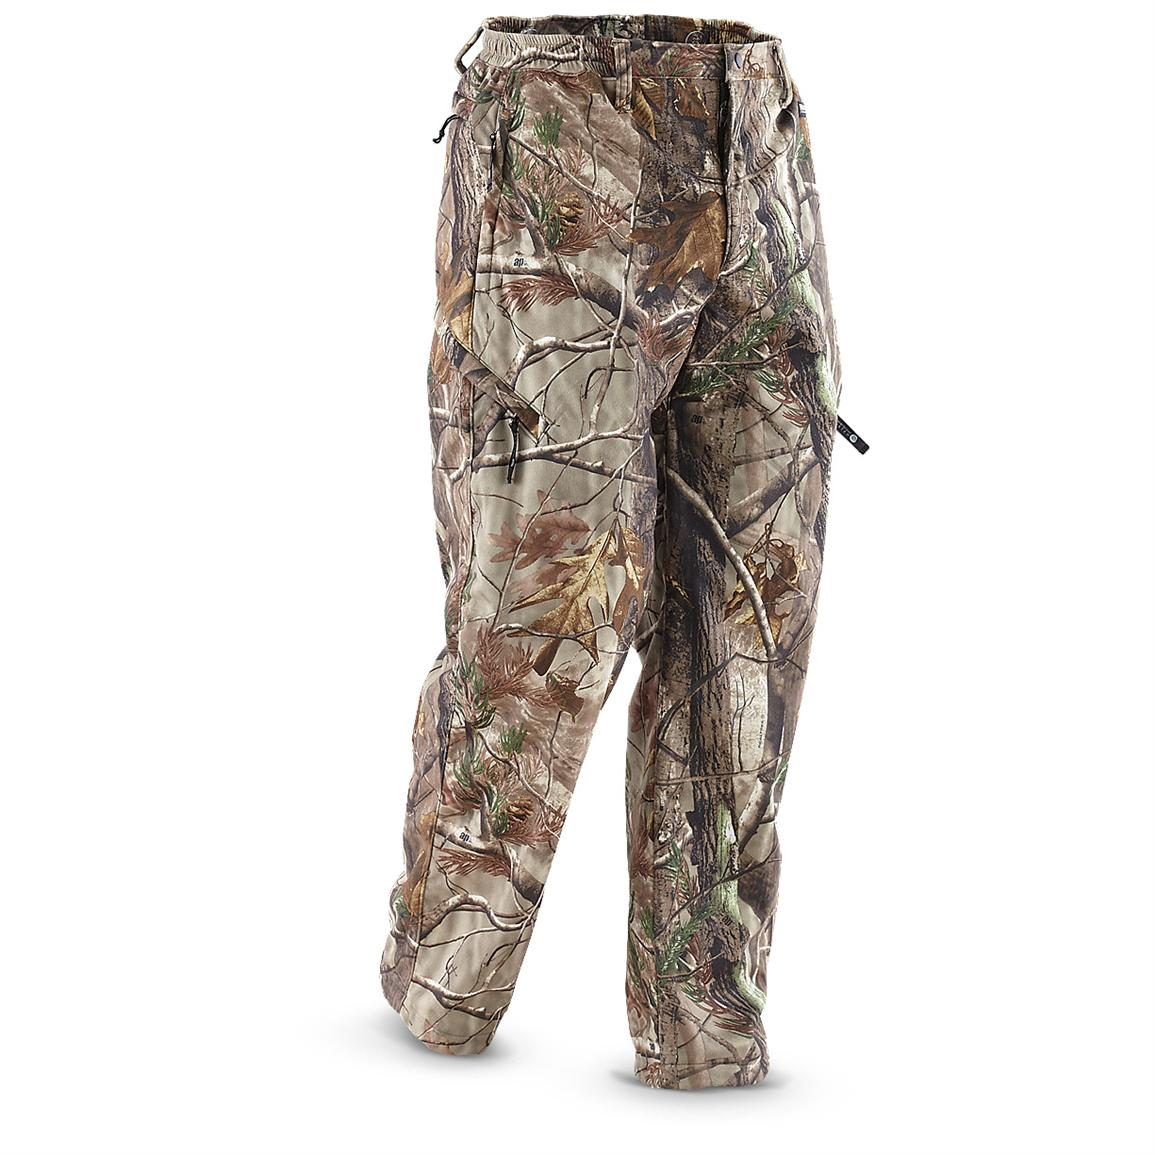 Rivers West® Waterproof Back Country Pants, Realtree® AP™ • Zip-closure pockets